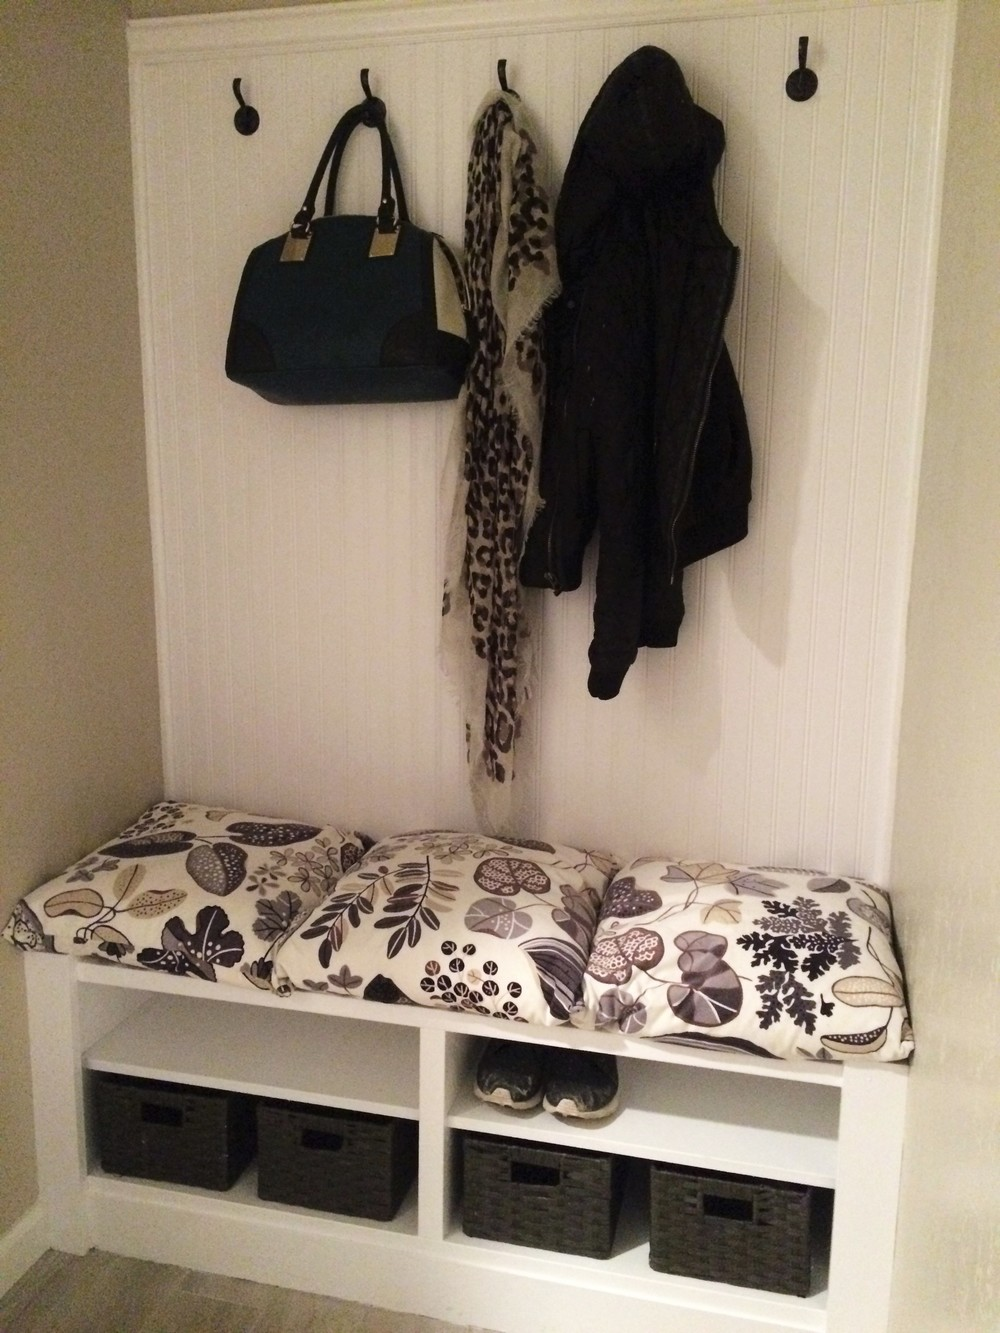 Mudroom - AFTER